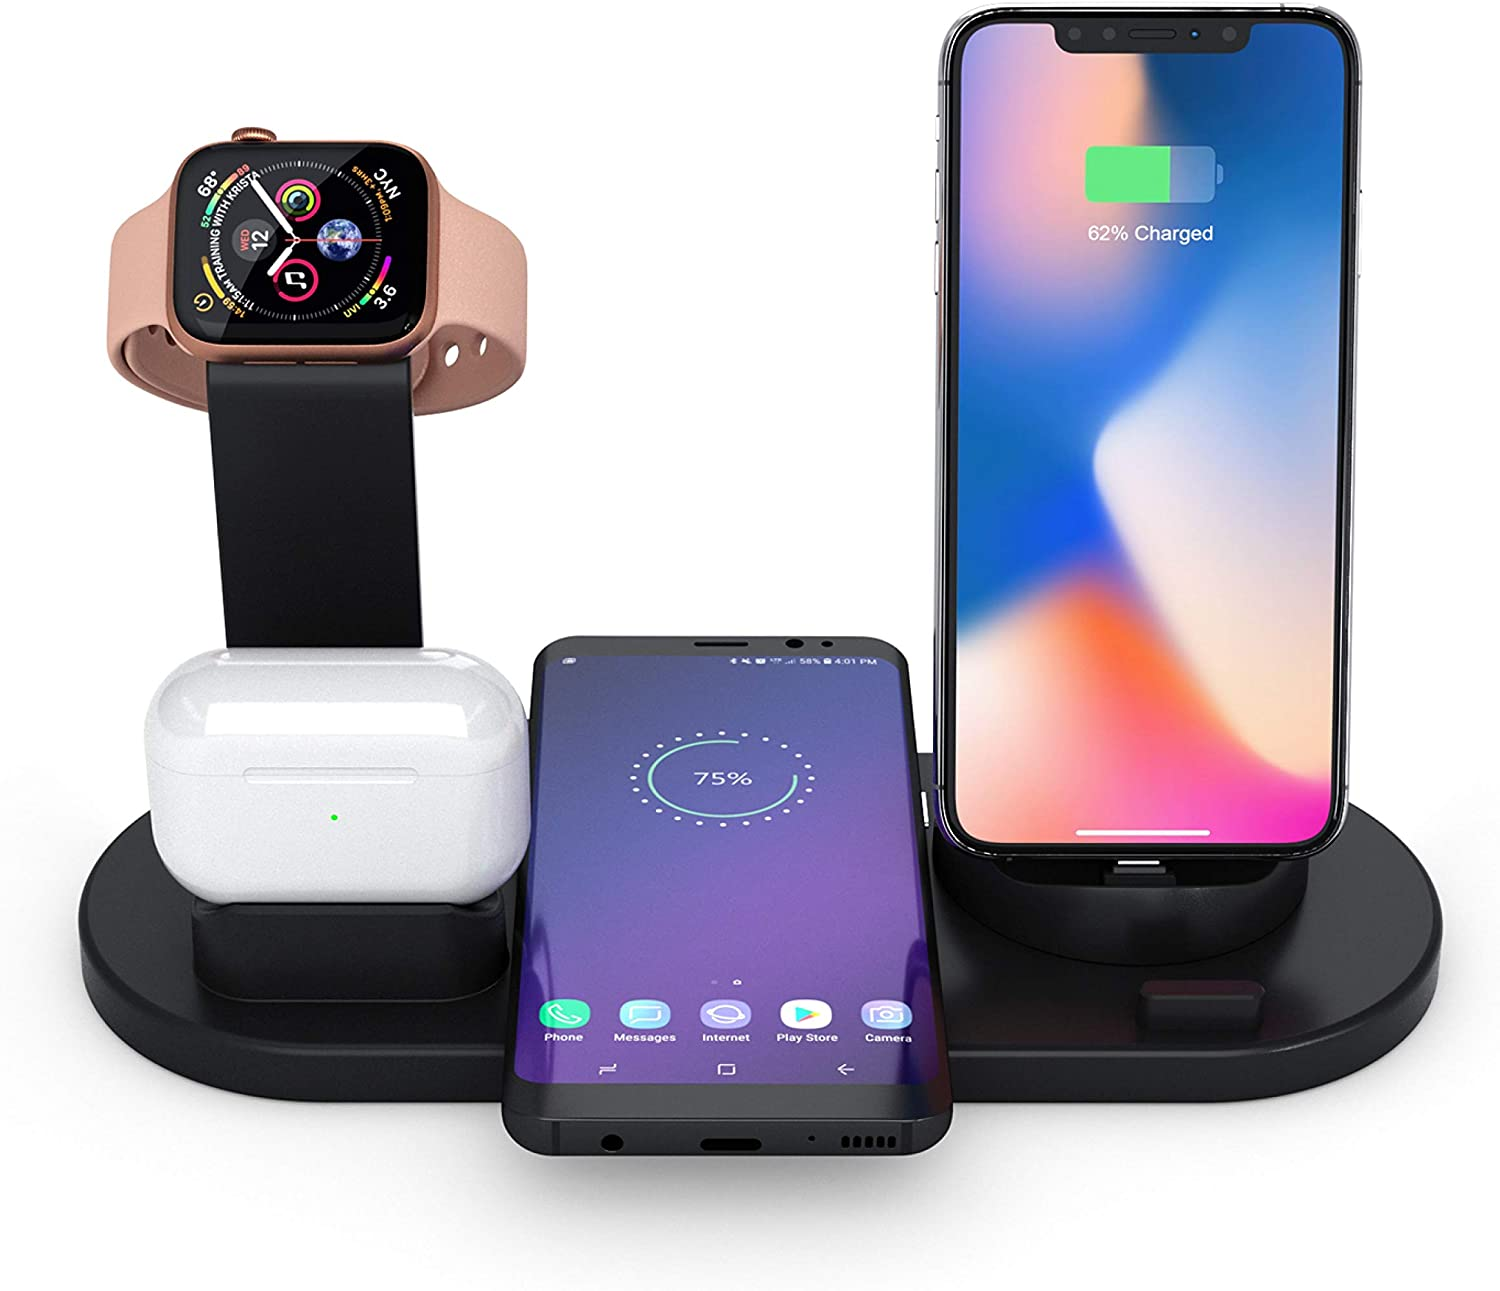 Wireless Charger, Charging Dock Station, Gifts for Boyfriend, 4 in 1 Phone Stand Compatible Apple Watch, Airpods Pro 2, iPhone 11/11pro/X/XS, Samsung Galaxy S20/S10 (QC3.0 & Original Required) Black